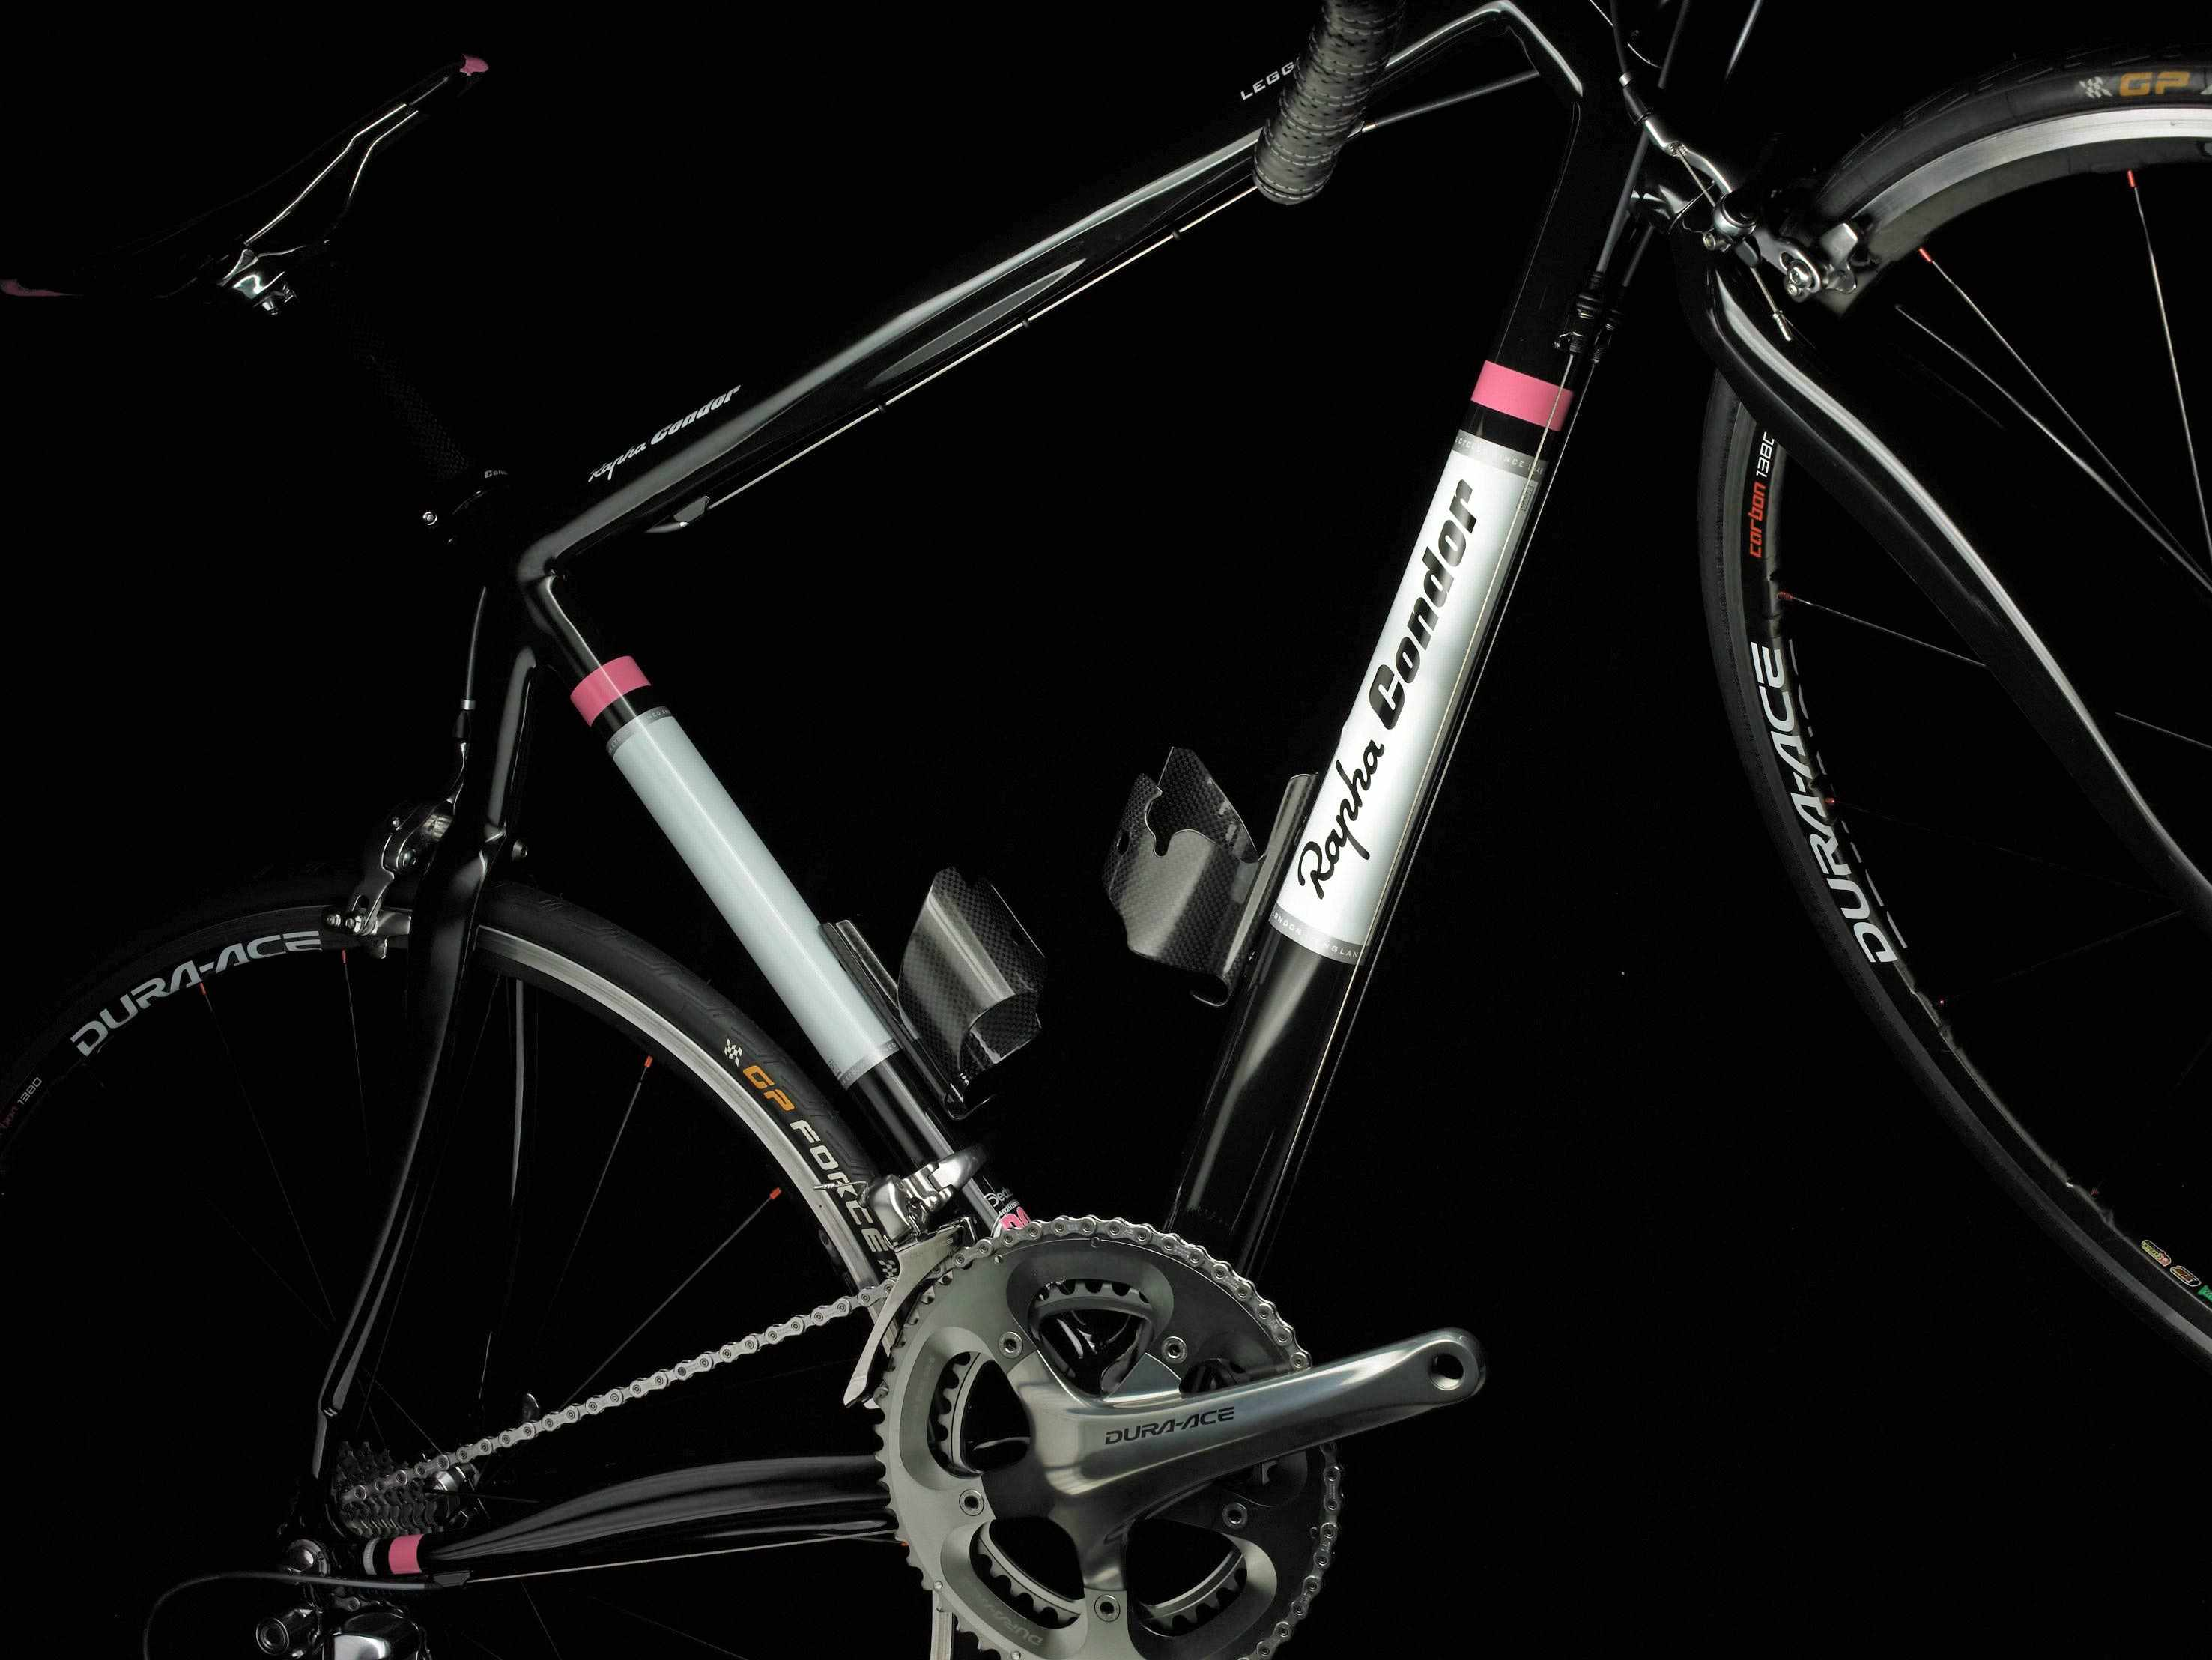 Rapha Condor Recycling.co.uk will be sponsored by Madison in 2008